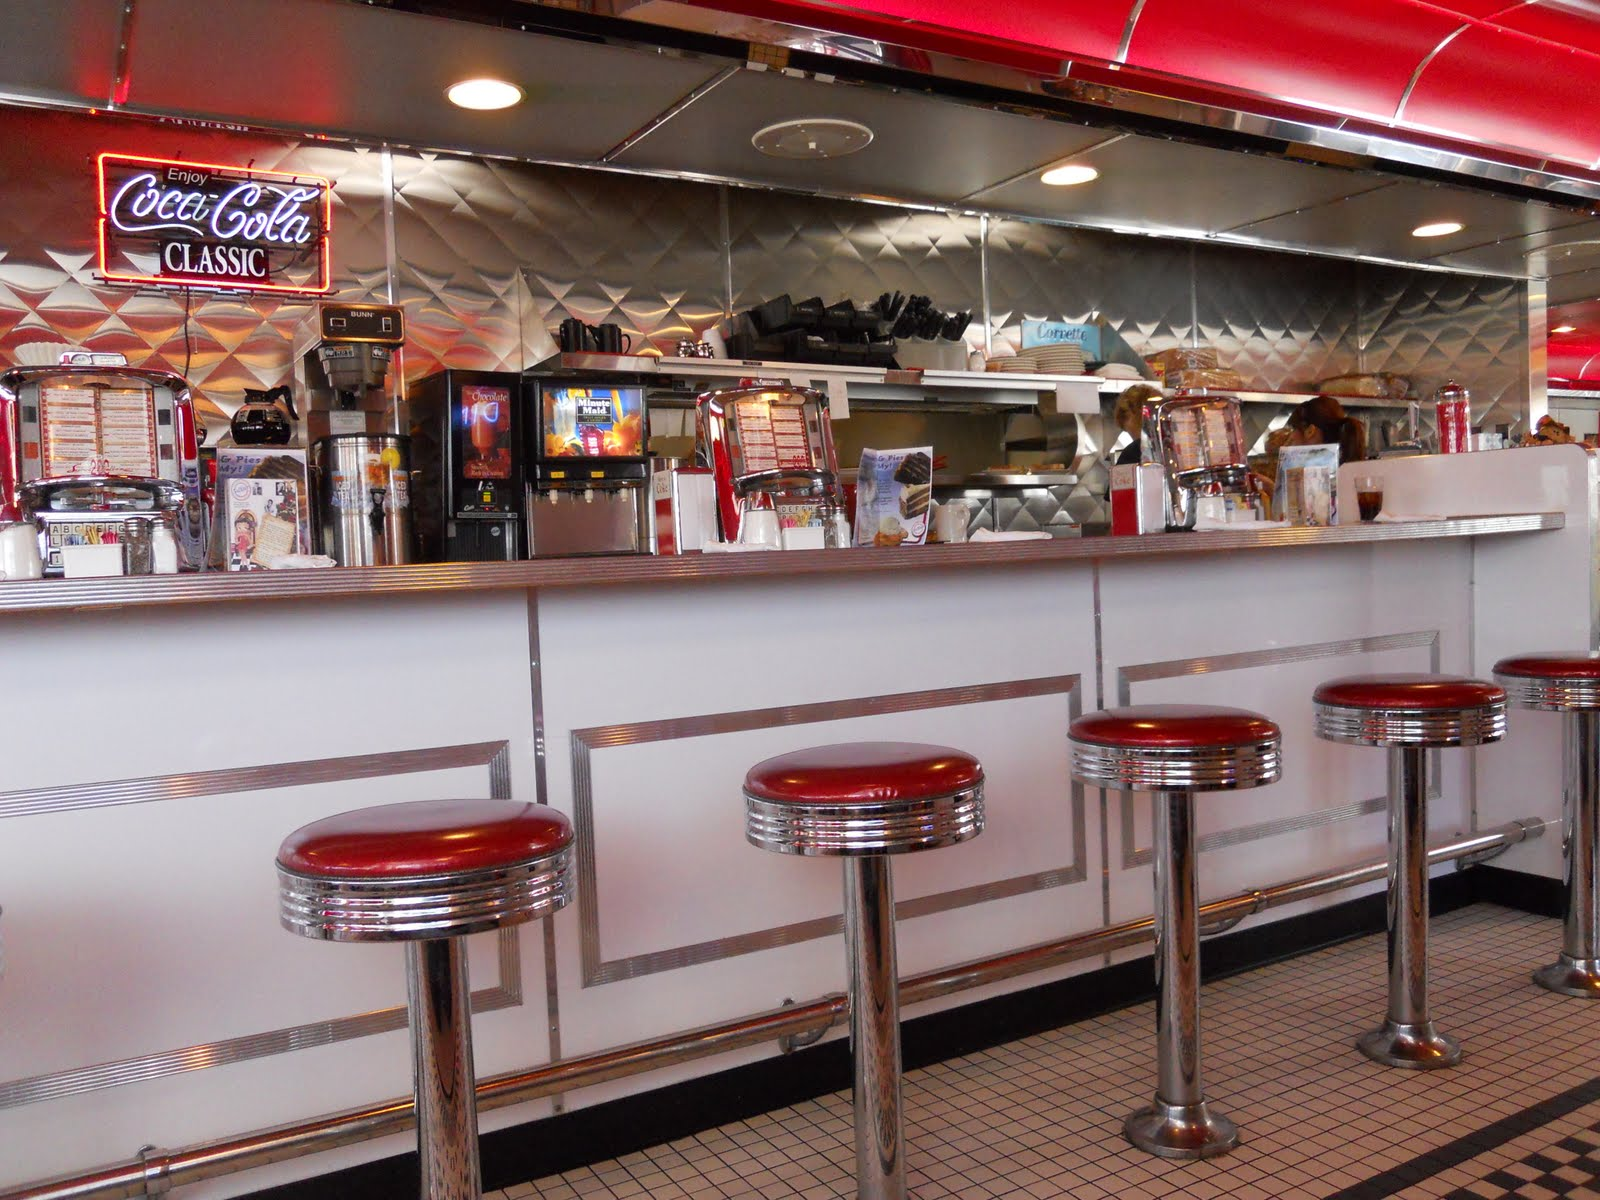 50s diner wallpaper wallpapersafari for 50s diner style kitchen